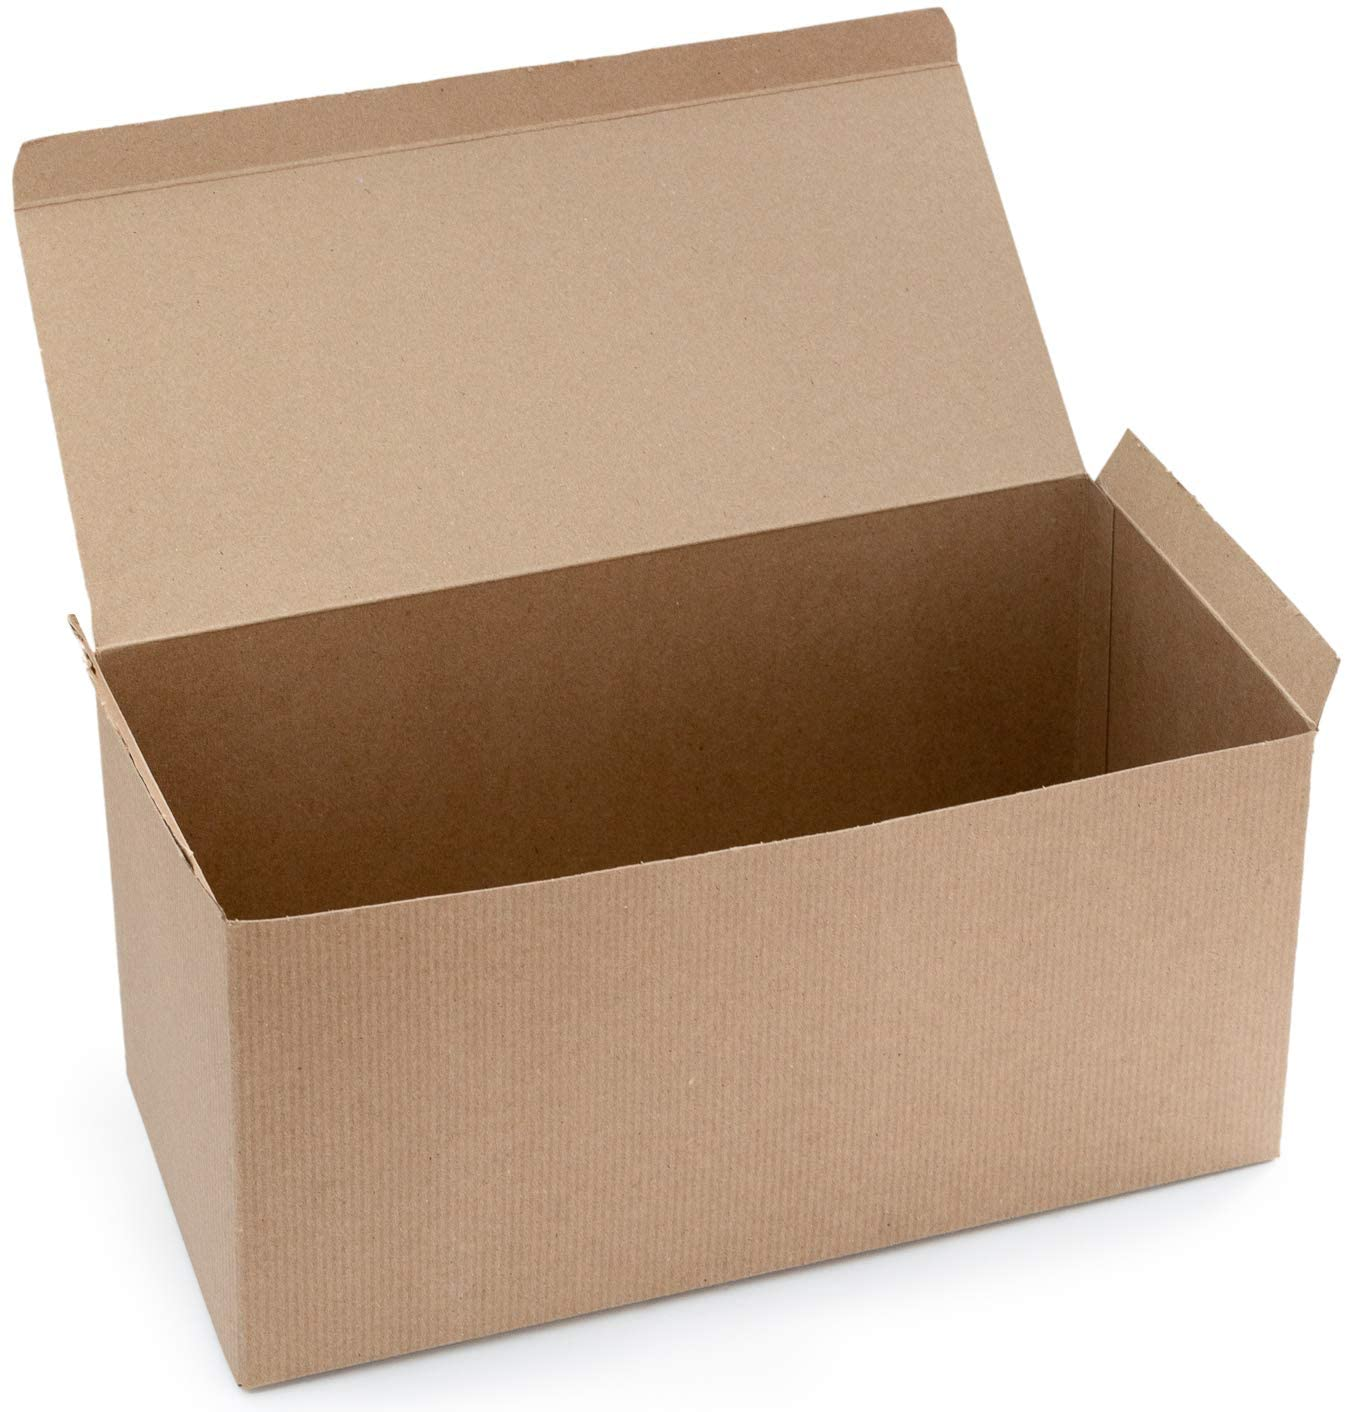 Made in USA 10-Count Recycled Brown Kraft Gift Boxes (15